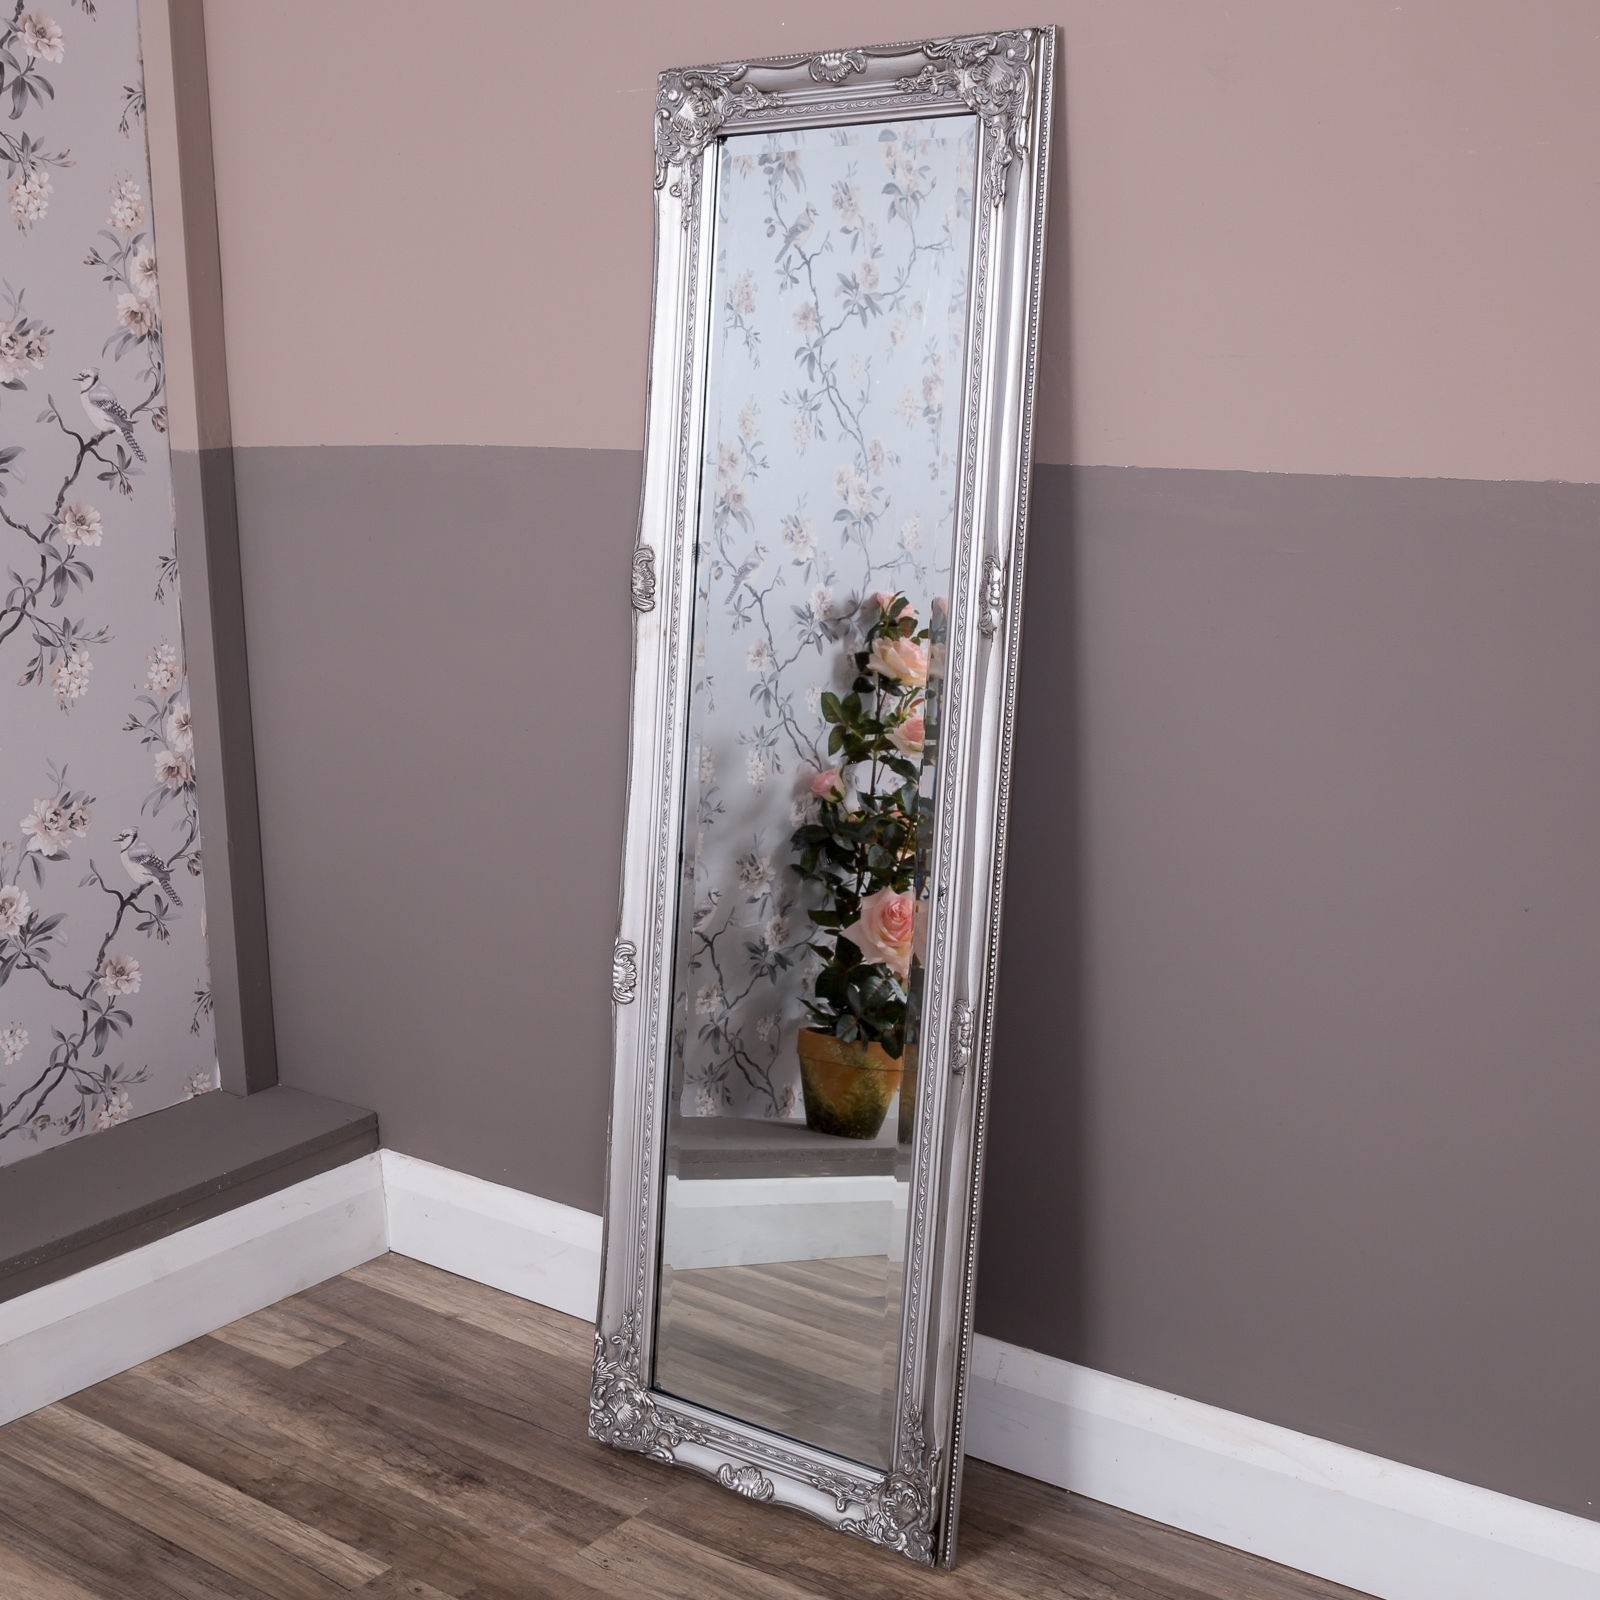 Decorative Mirrors | Ebay intended for Long Decorative Mirrors (Image 4 of 15)